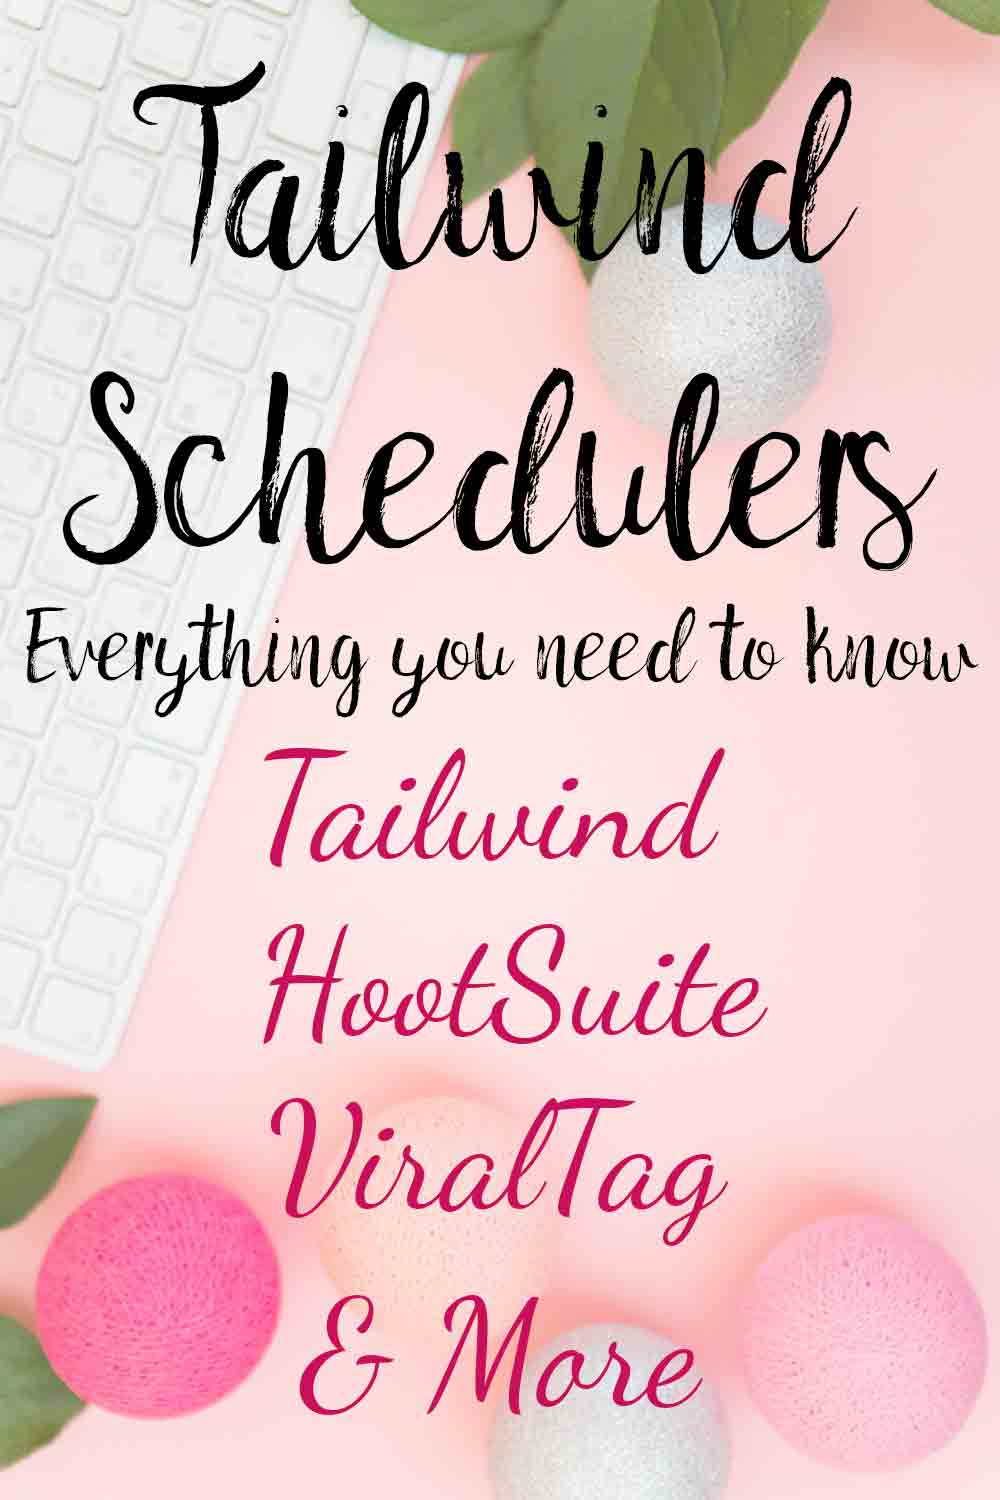 Pinterest Scheduling Tools: A Comprehensive Guide. Pros, cons, prices, everything you need to know. Tailwind, Hootsuite, ViralTag, Buffer, & more! #blog #blogging #Tailwind #pinterestscheduling #pinterest #hootsuite #viraltag